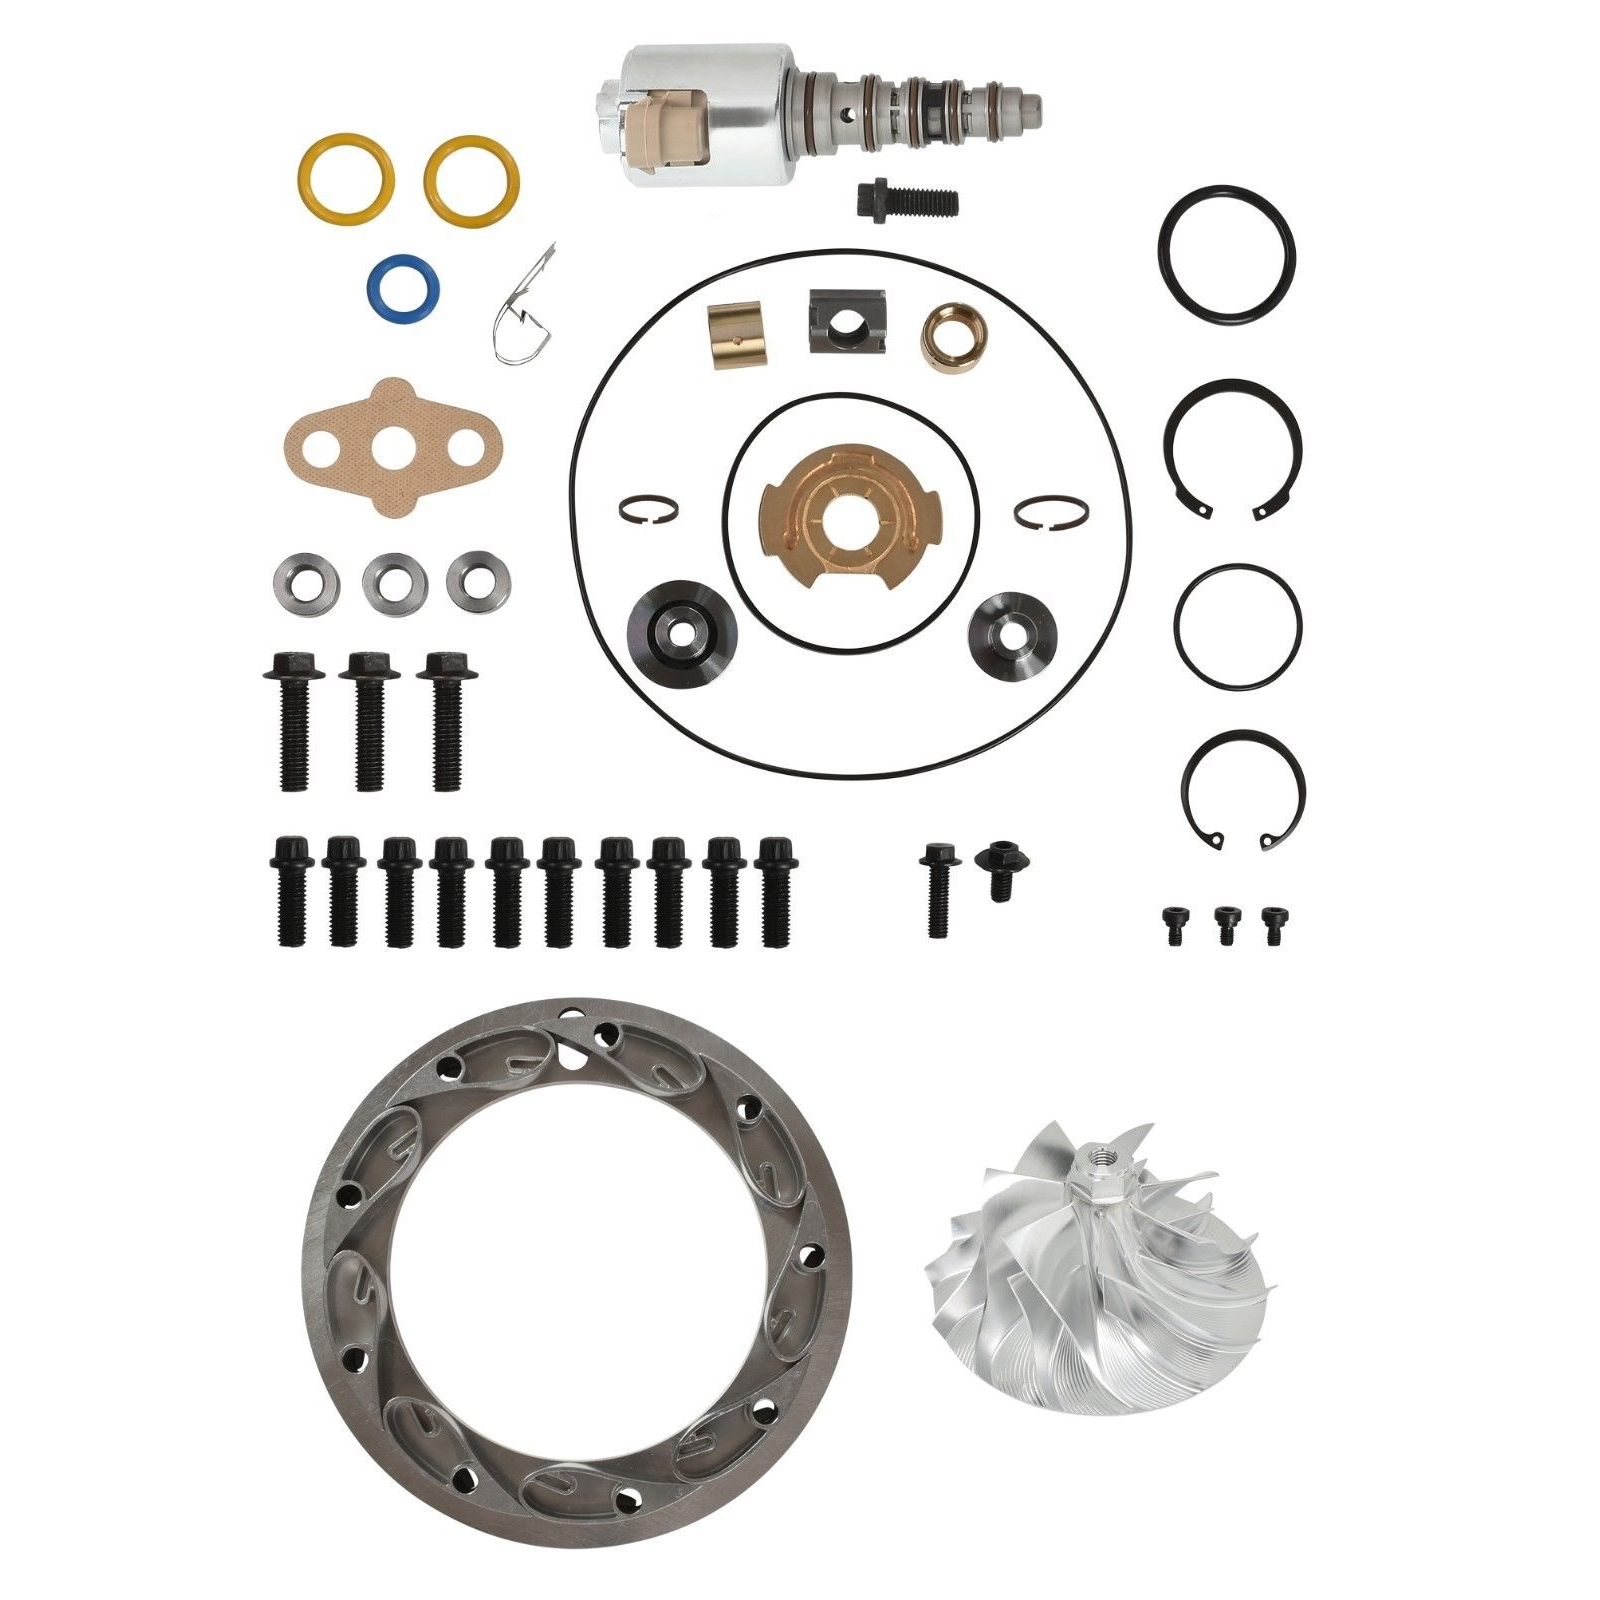 GT3782VA Turbo Rebuild Kit Billet Compressor Wheel Unison Ring 13.2mm Vanes VGT Solenoid For 05.5-10 6.0L Ford Powerstroke Diesel